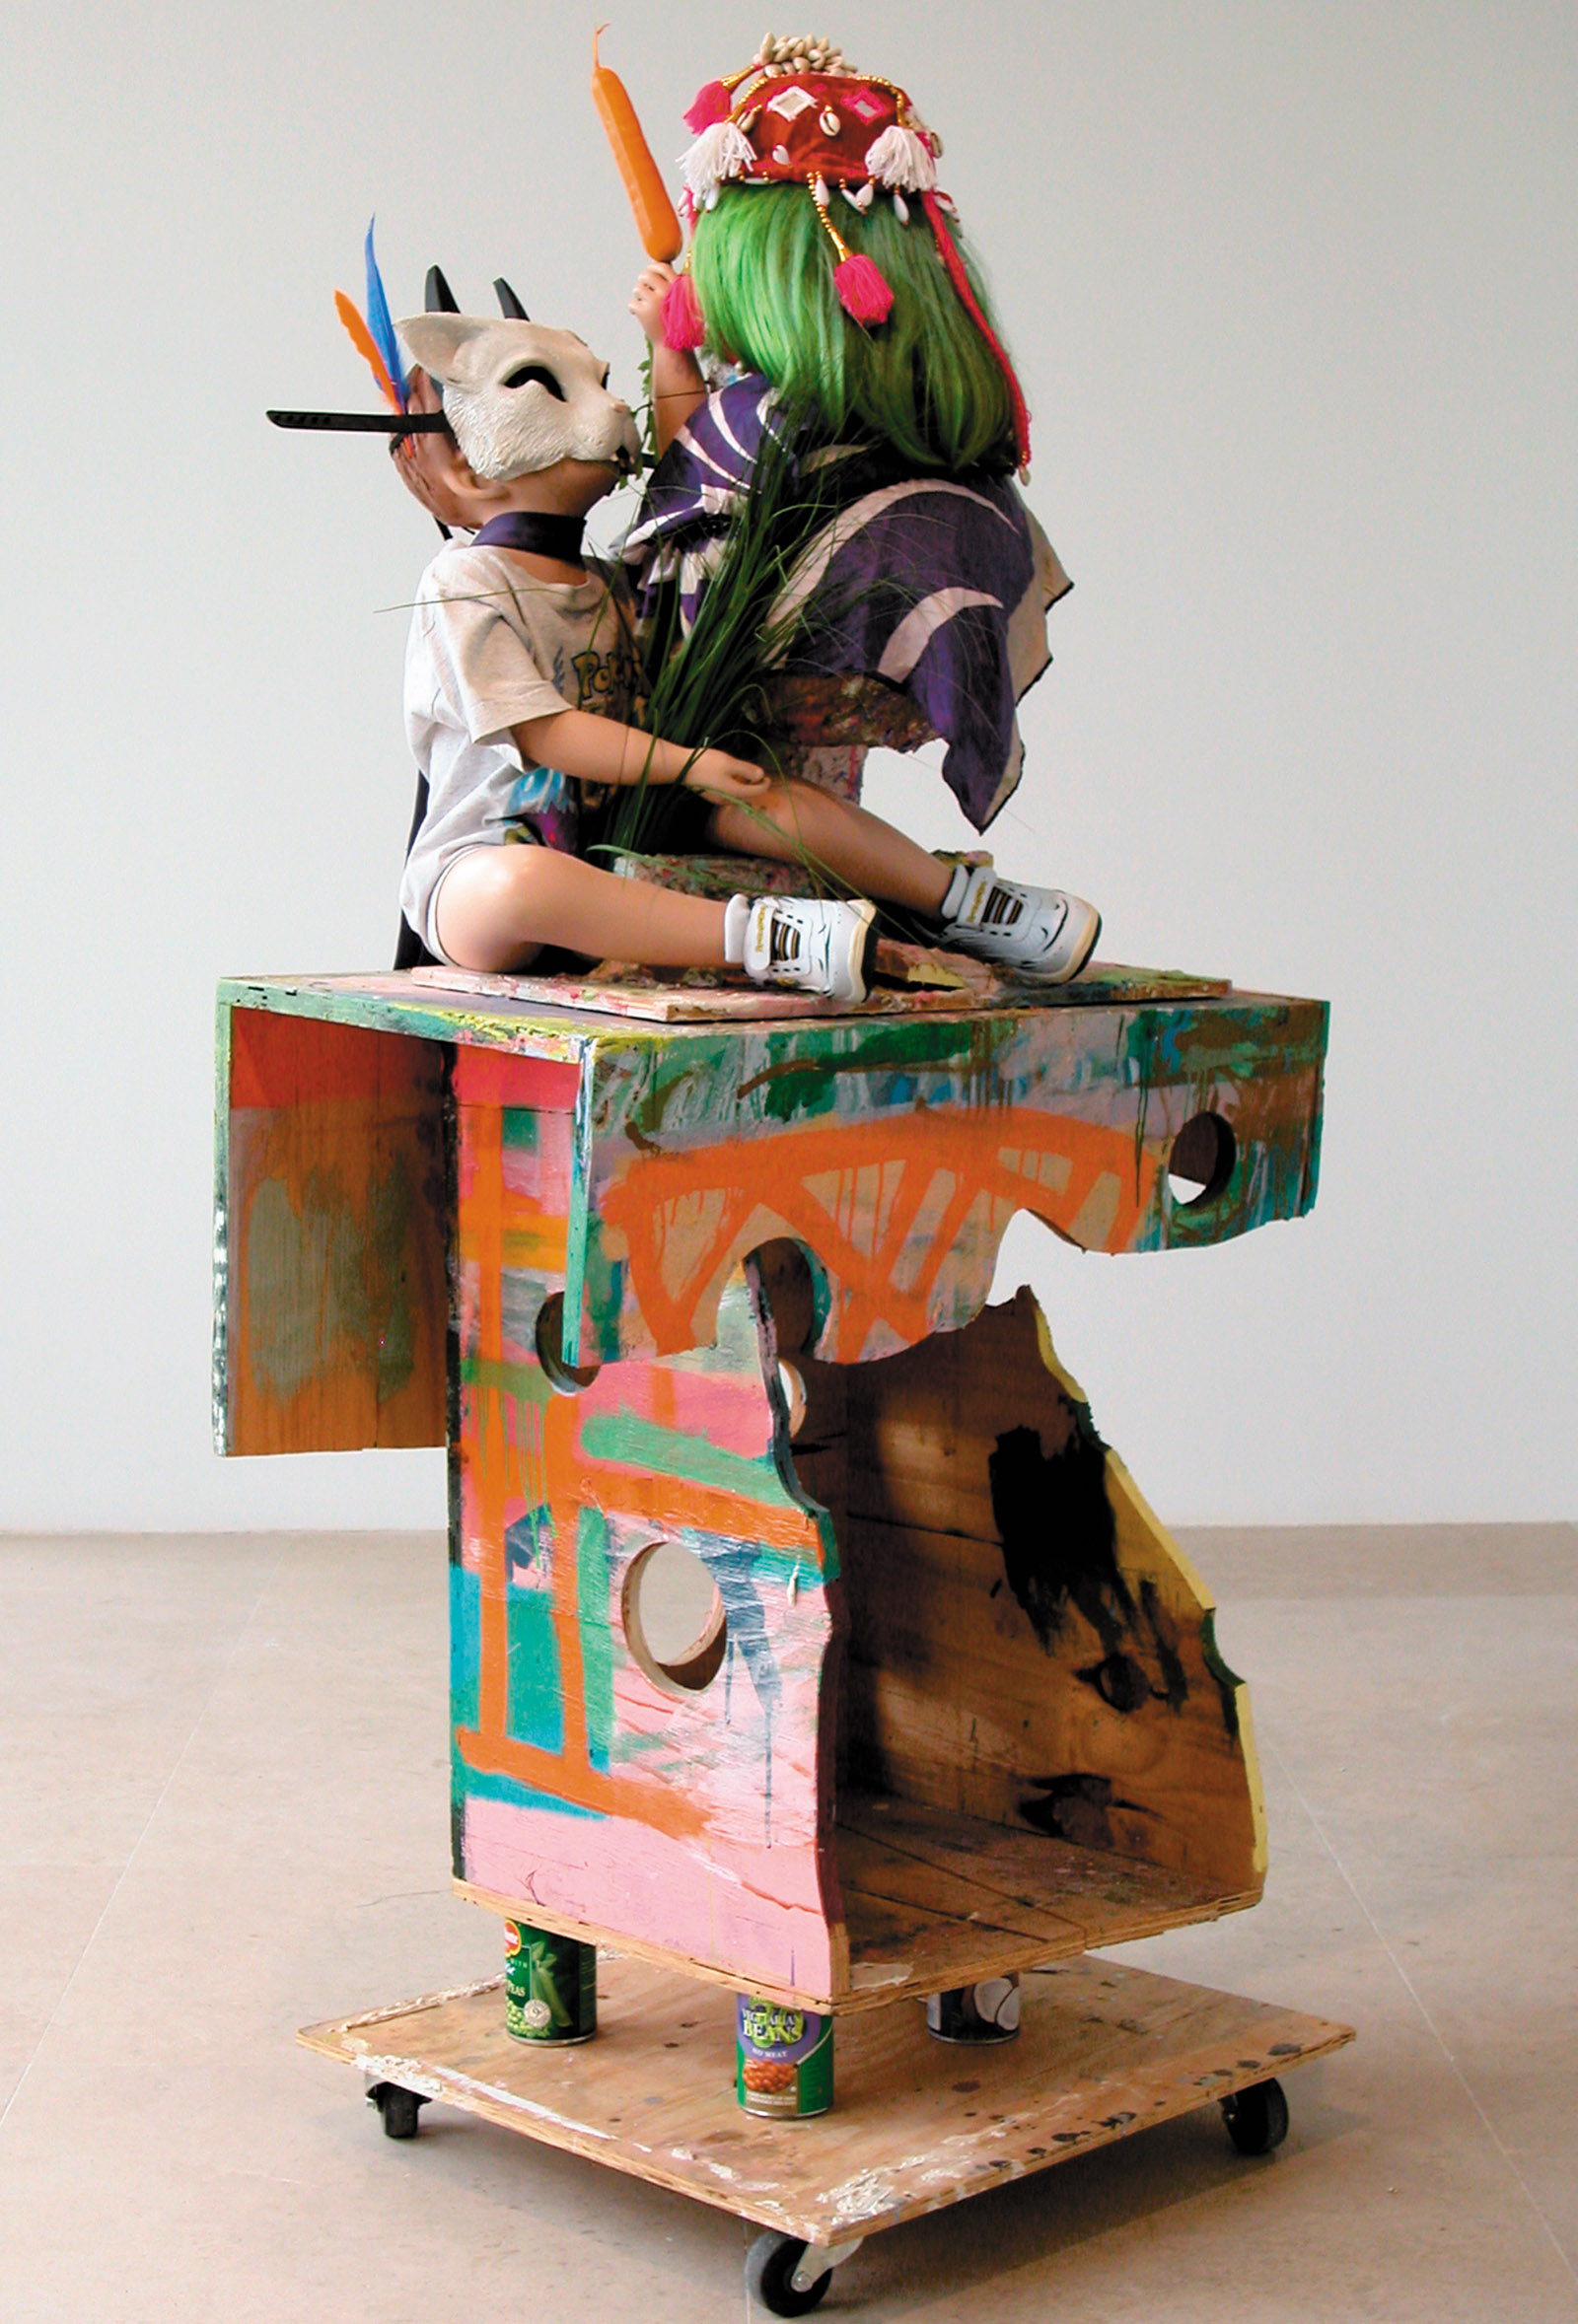 I'm with Stupid, 2007; a sculpture by Rachel Harrison